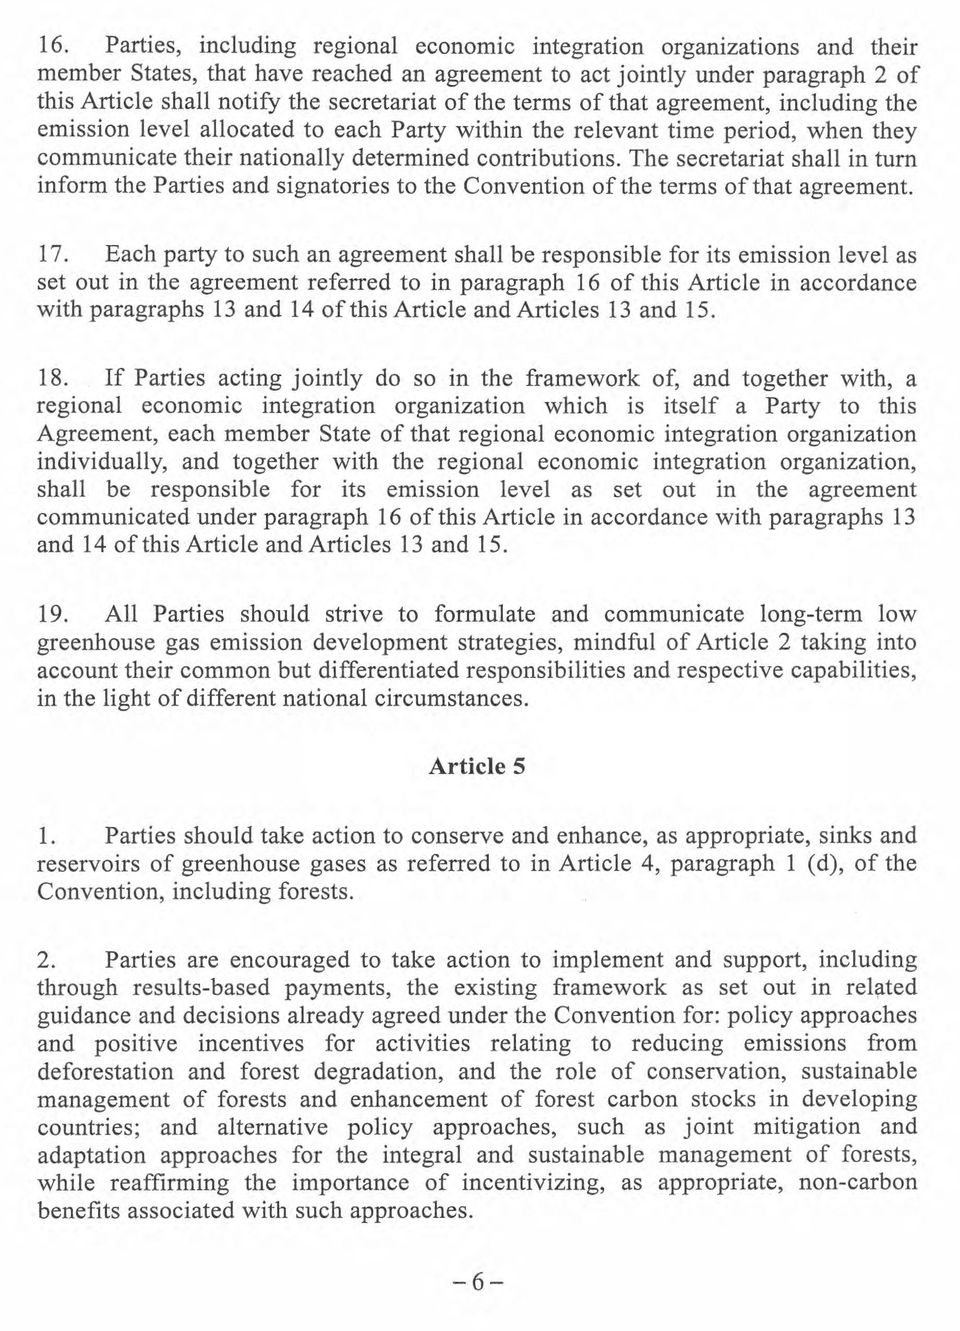 The secretariat shall in turn inform the Parties and signatories to the Convention of the terms of that agreement. 17.